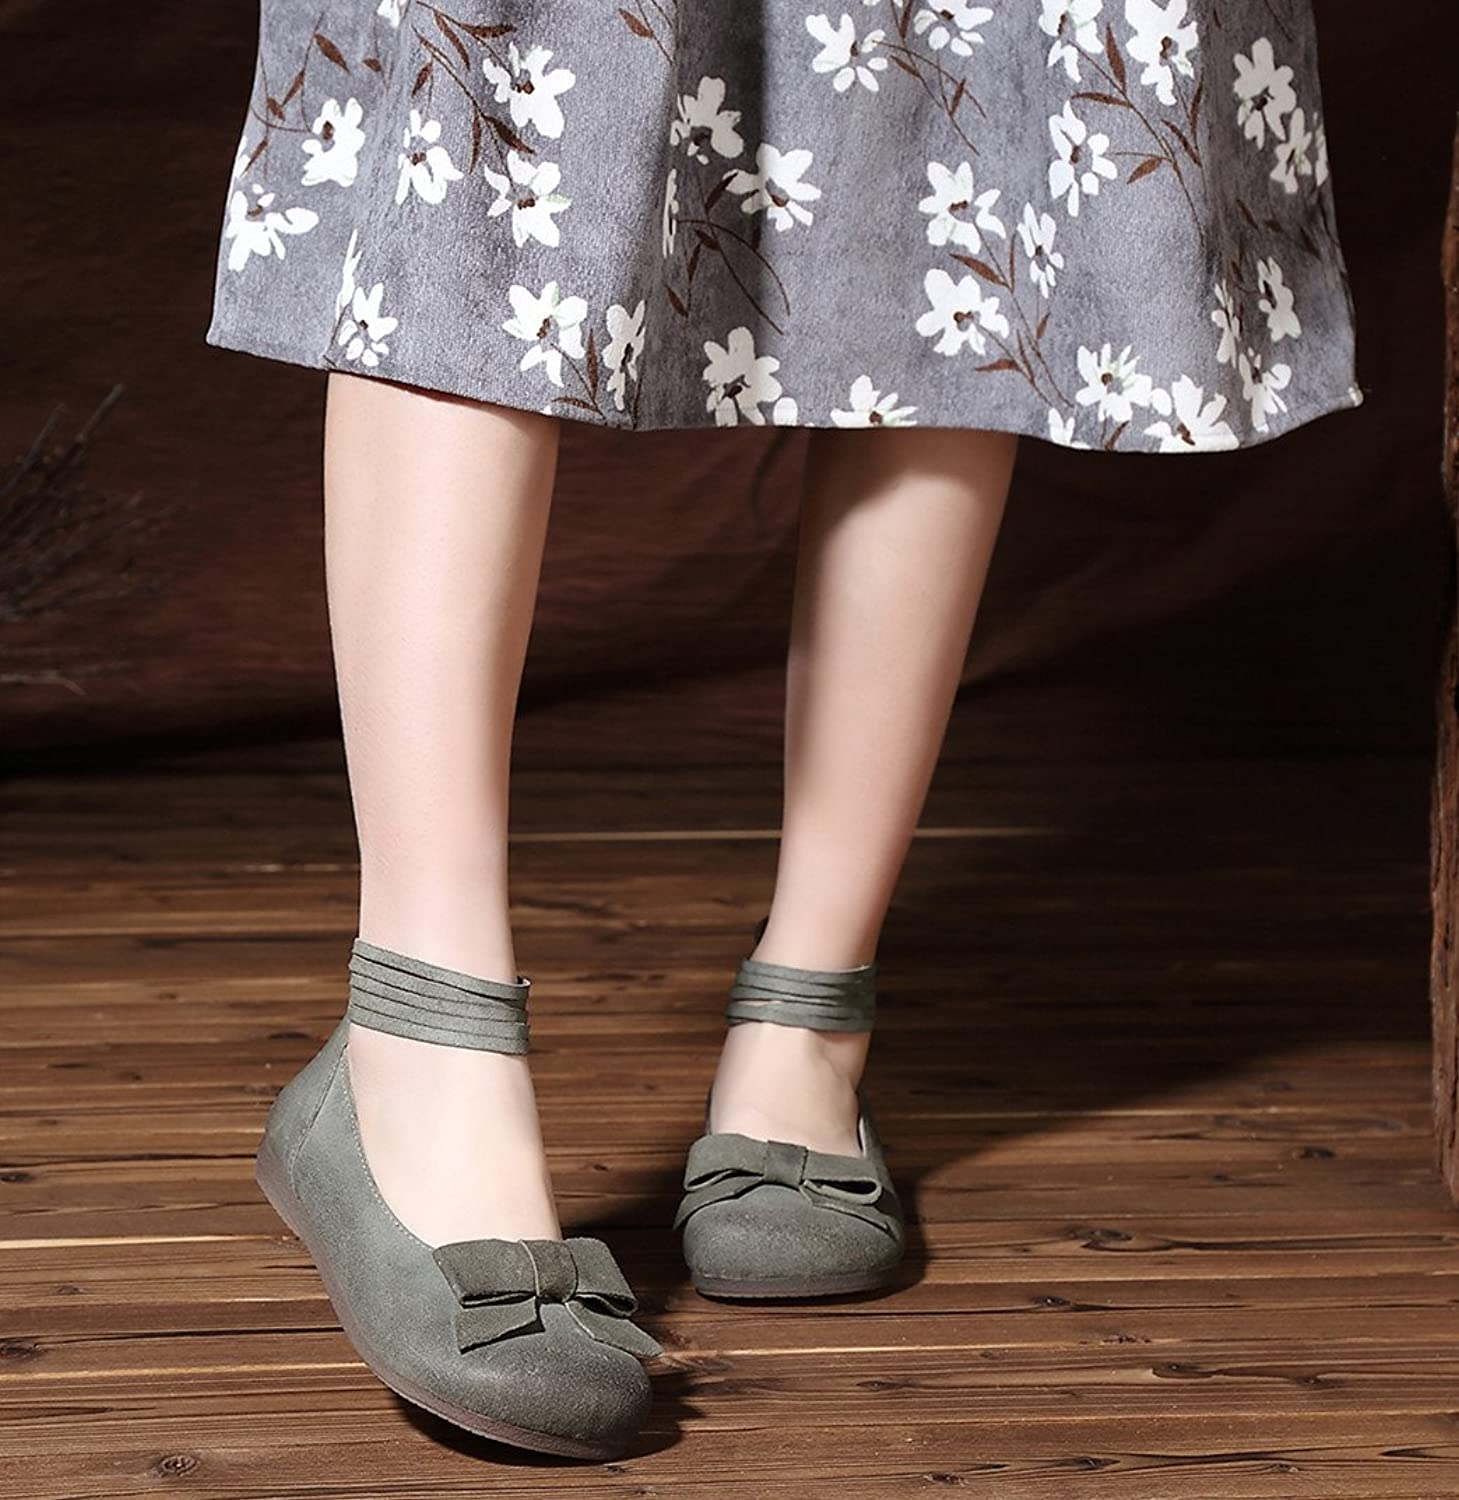 2017 New Handmade Retro Leather Strappy Flats For Women Vintage Rope With Bow Soft Sole